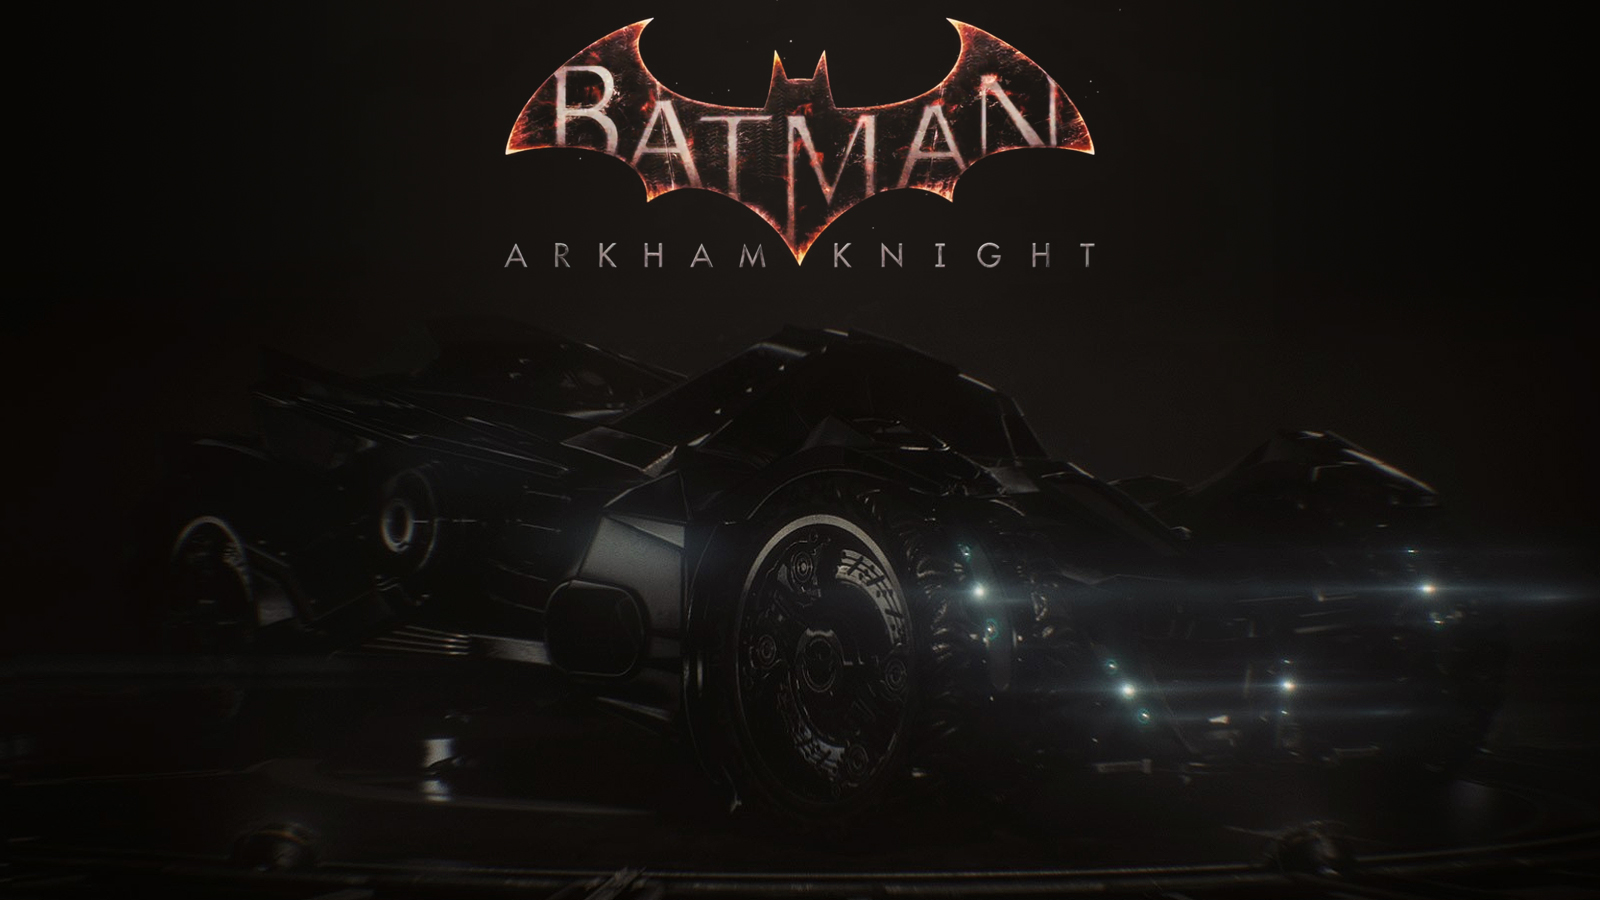 Arkham Knight Batmobile Wallpaper by heyPierce on DeviantArt